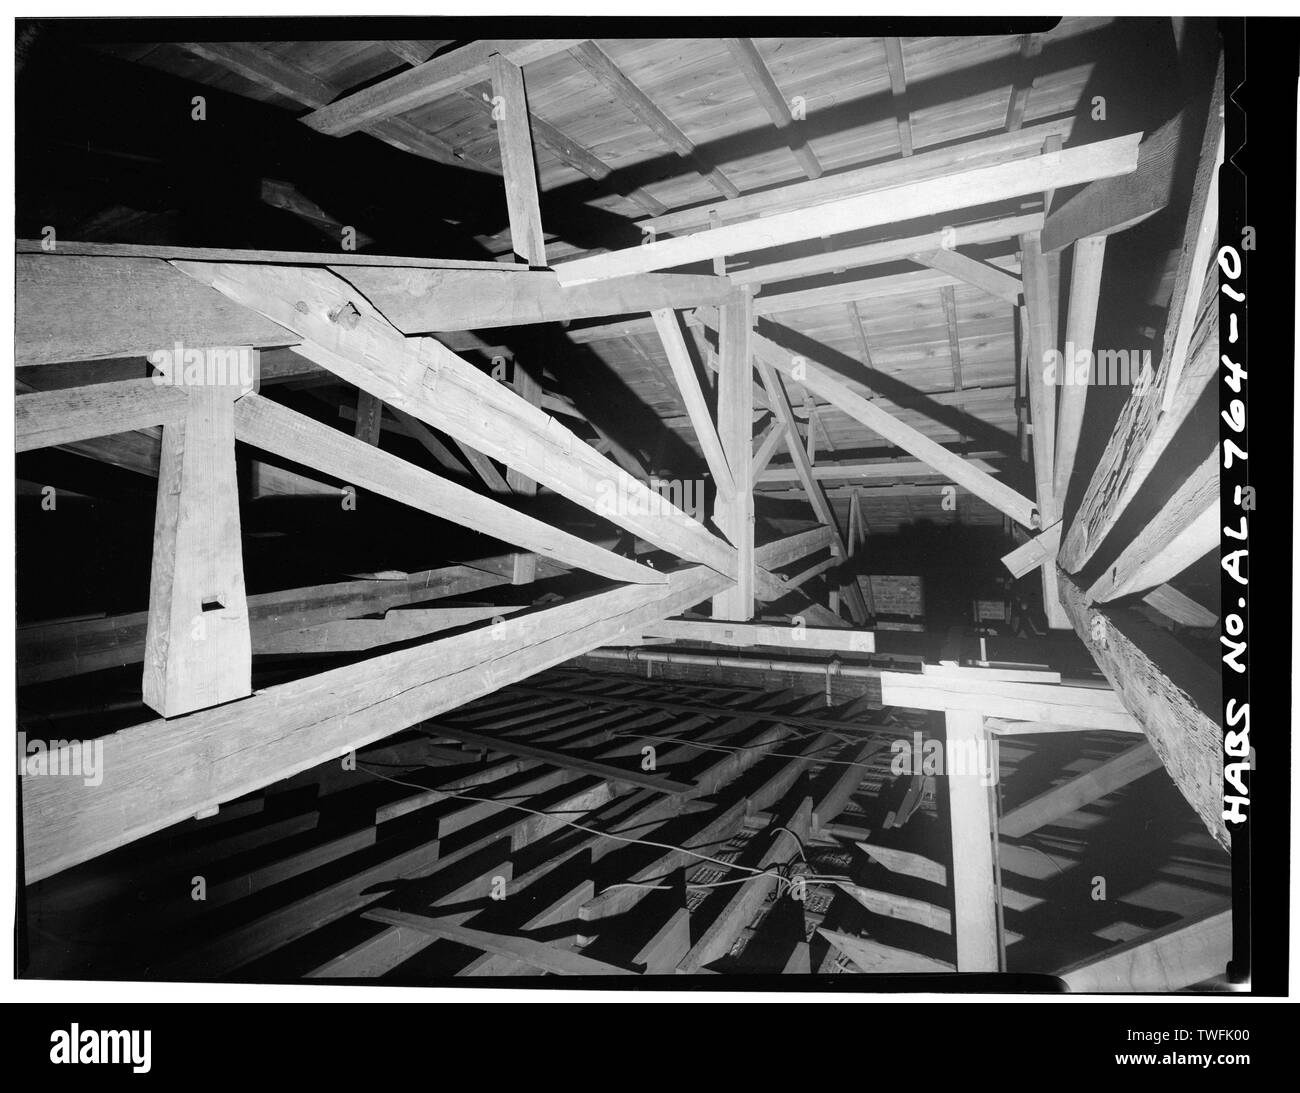 Portion Of The Roof Stock Photos & Portion Of The Roof Stock